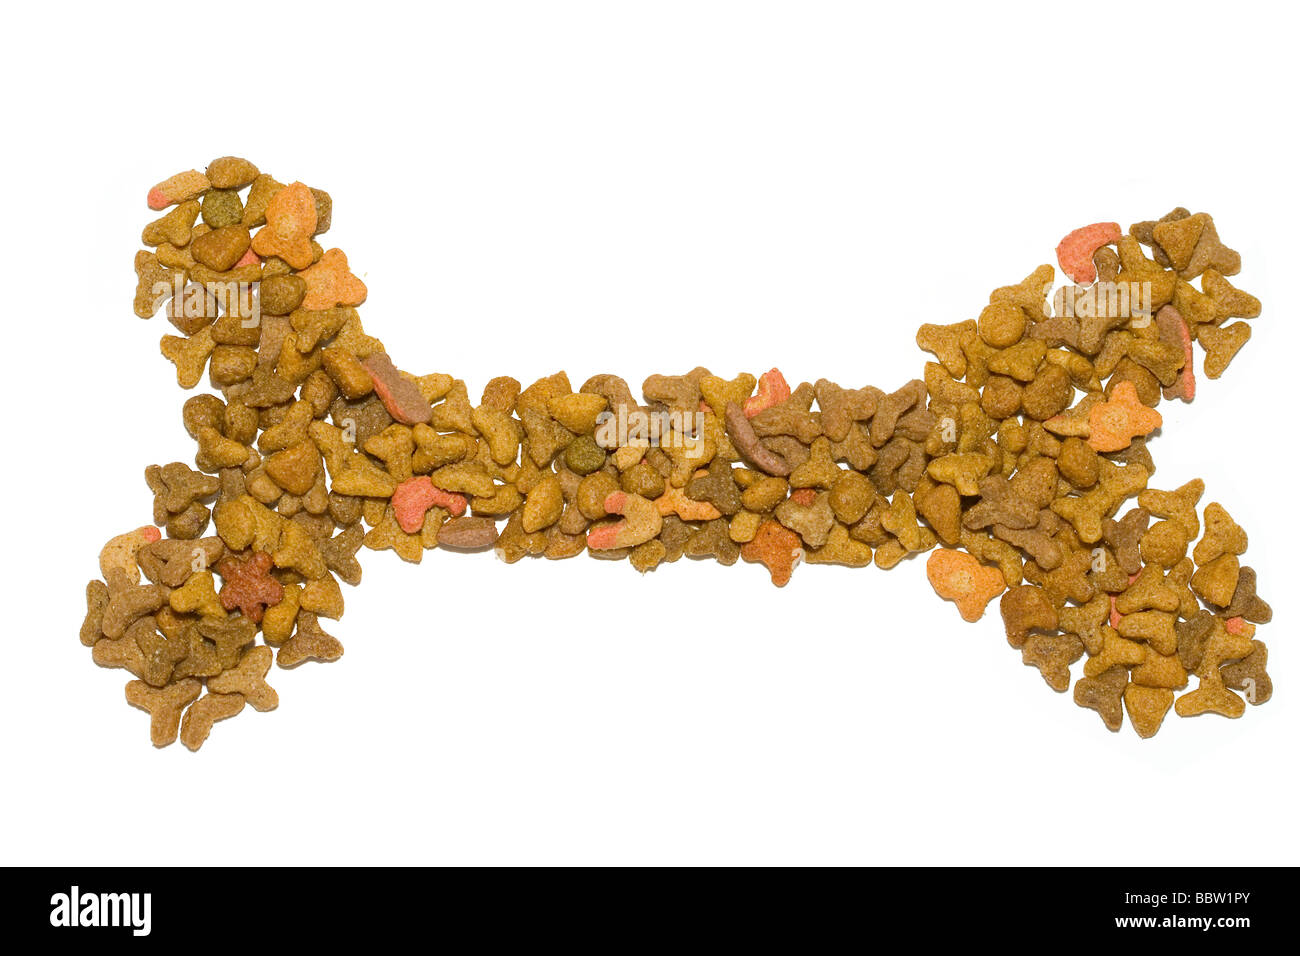 Bone for the Dog from the pet food - Stock Image